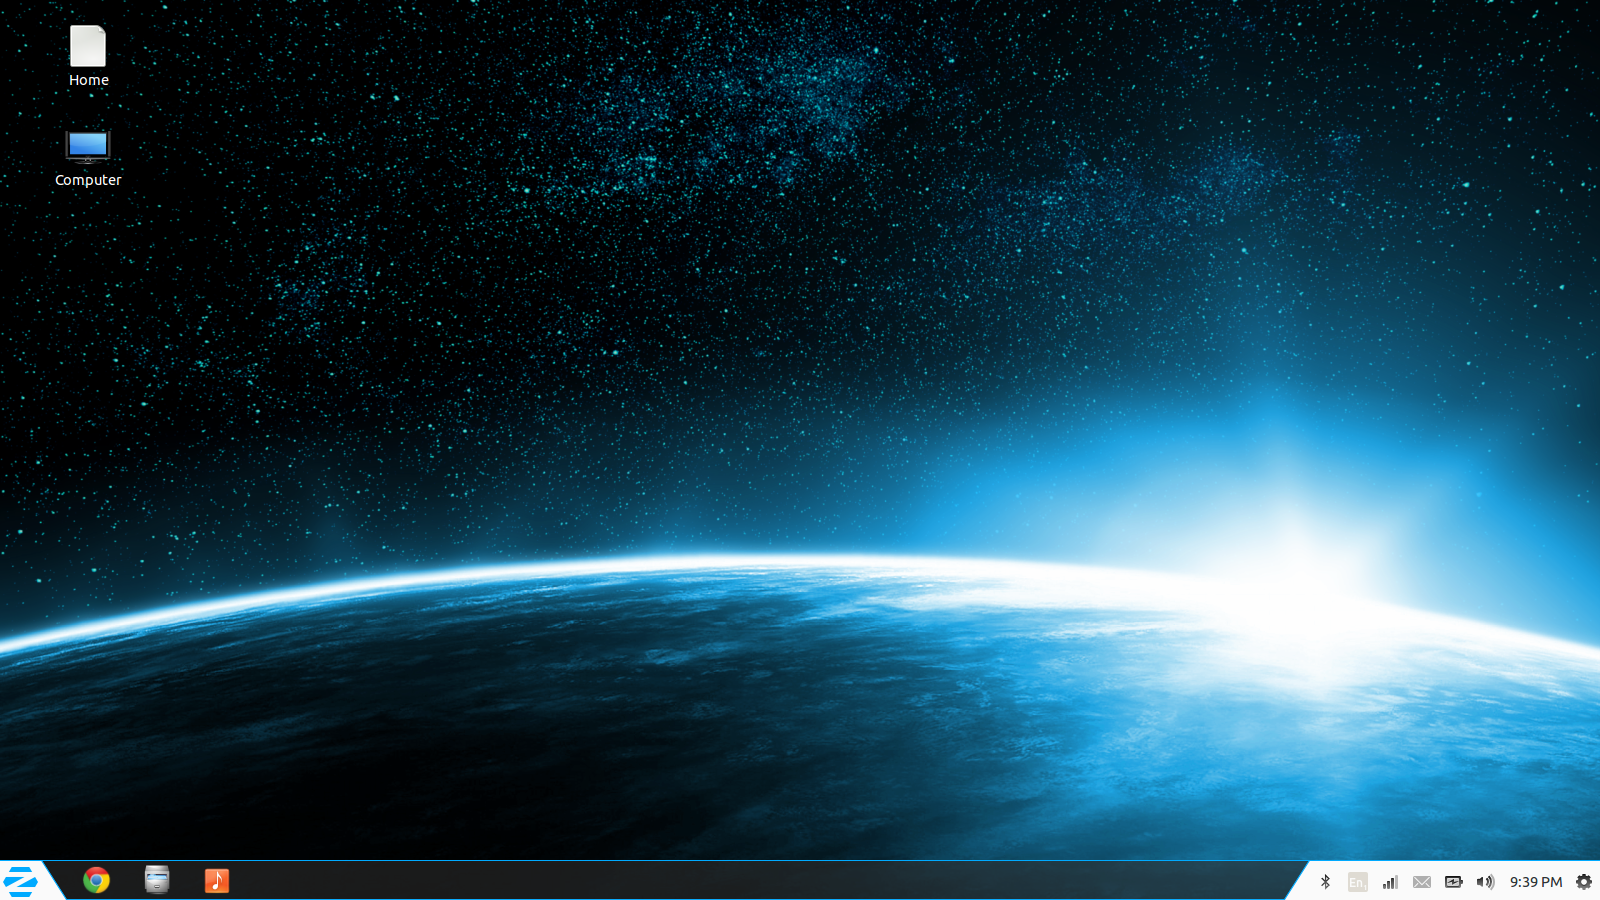 windows 7 default desktop background viewing gallery